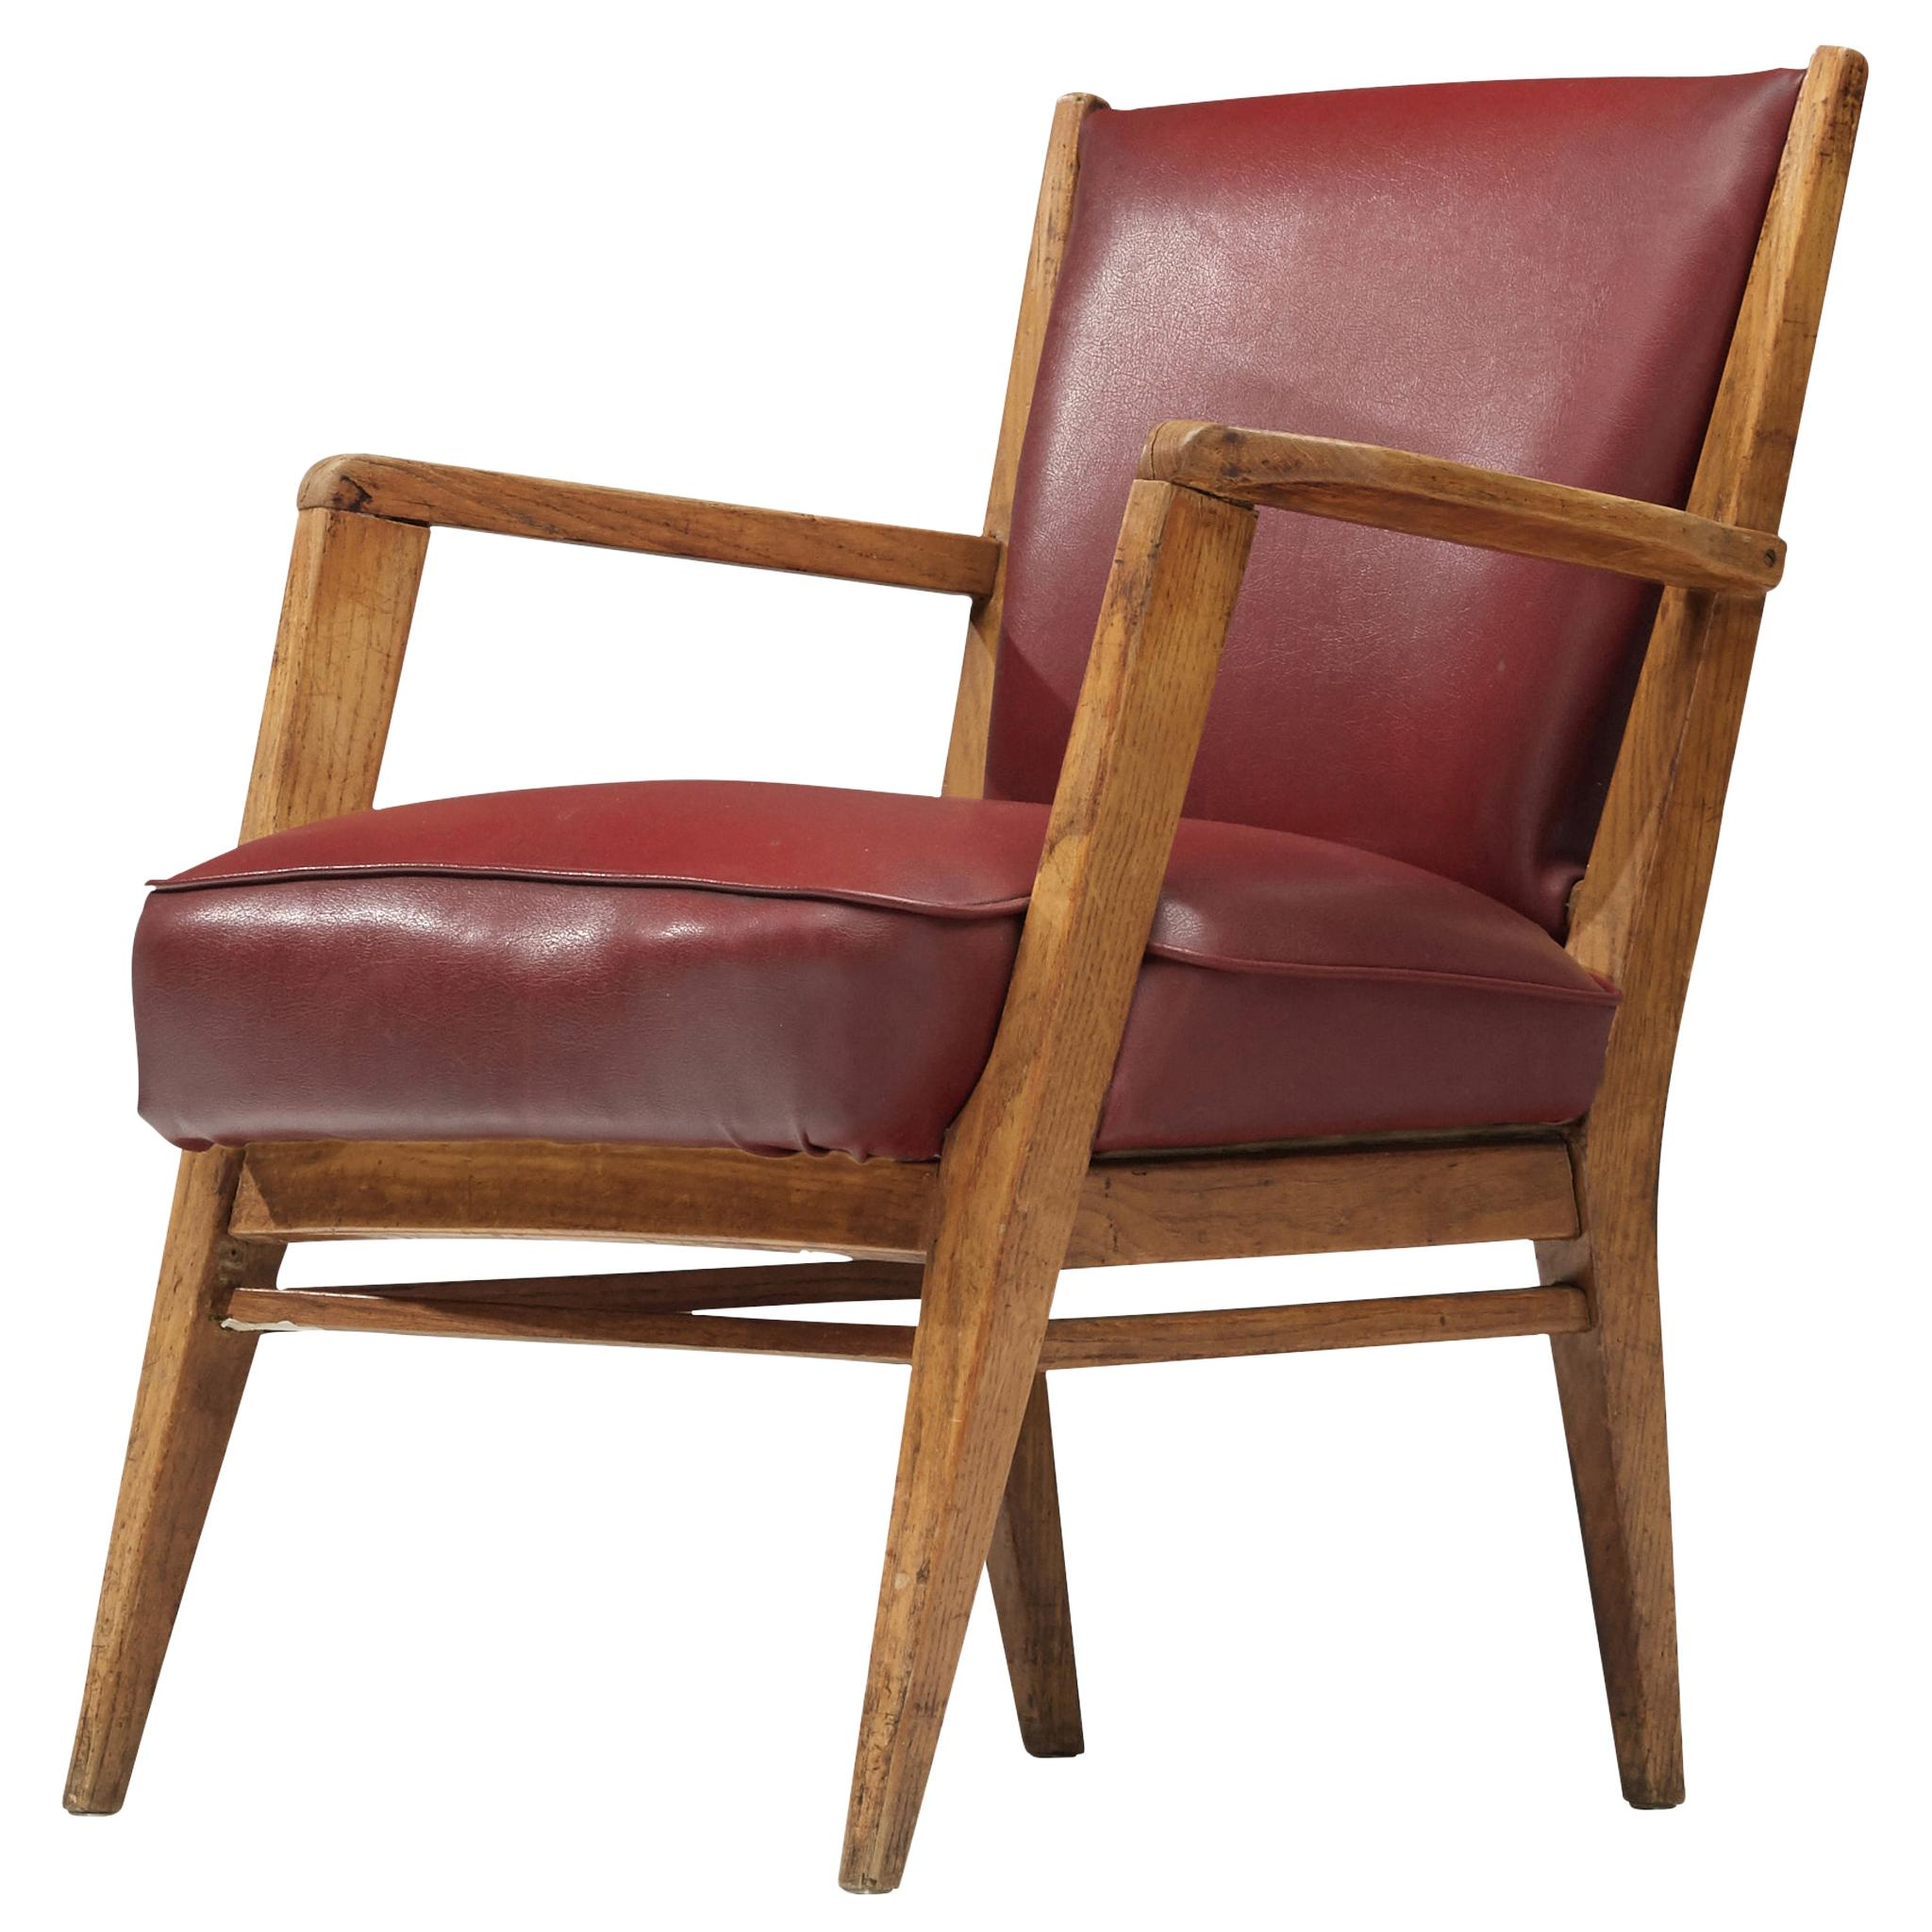 BBPR Lounge Chair in Burgundy Leatherette